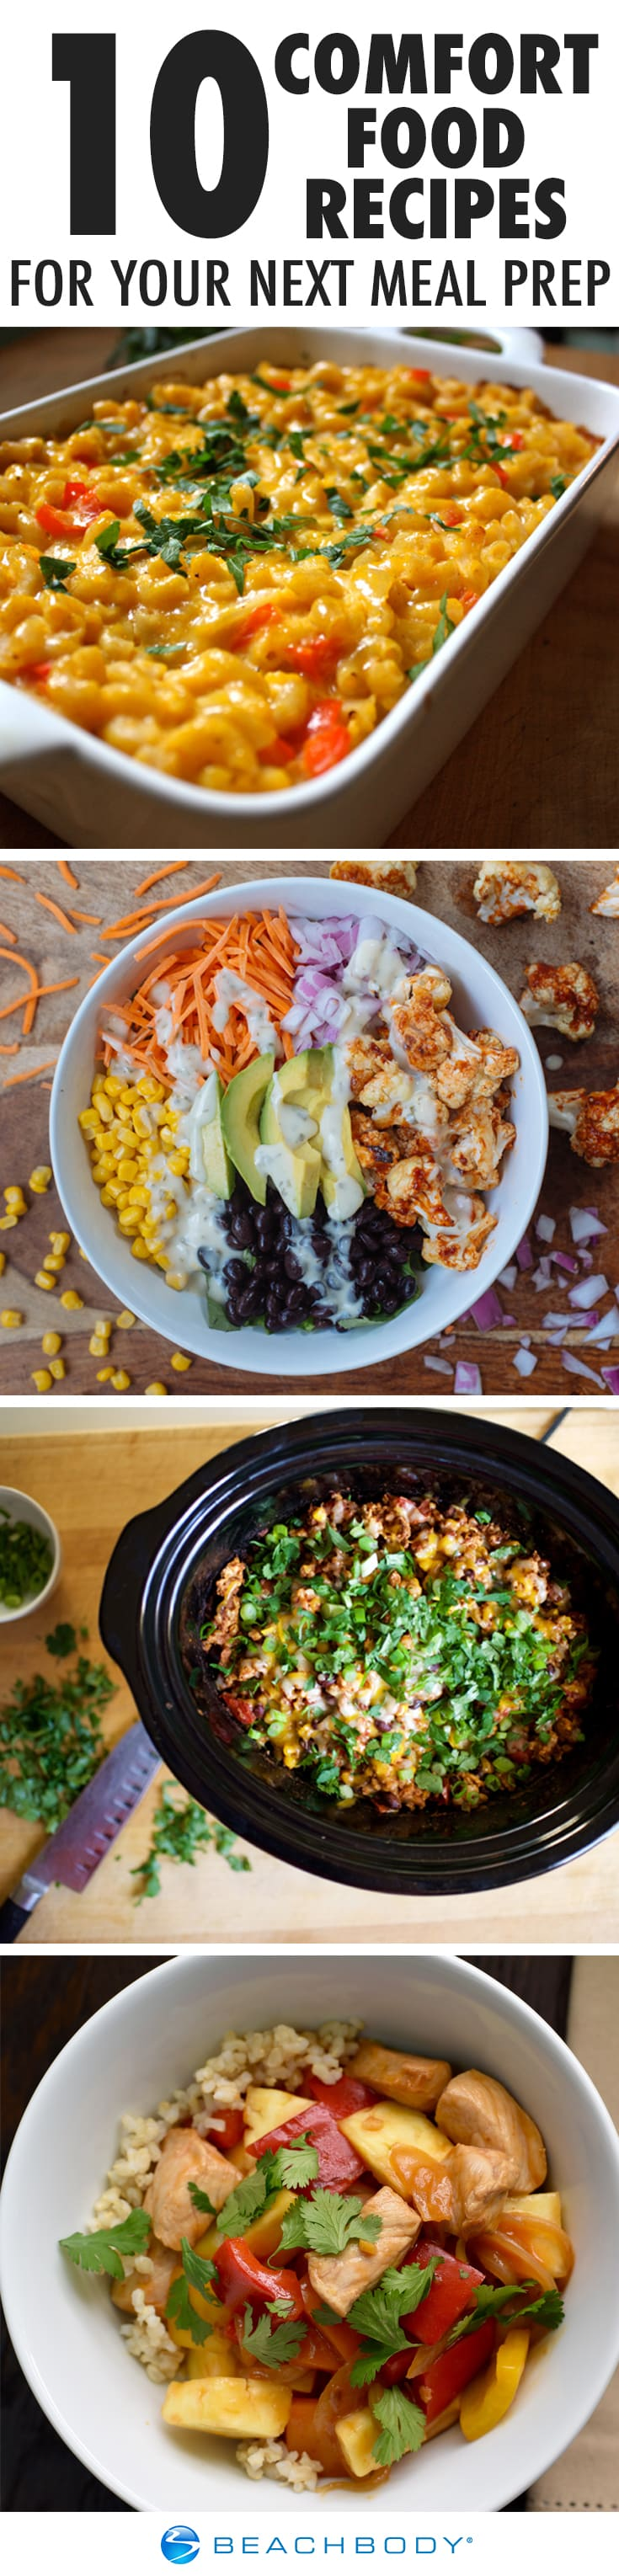 10 comfort food recipes to try in your next meal prep the 10 comfort food recipes to try in your next meal prep mealprep mealplan forumfinder Images